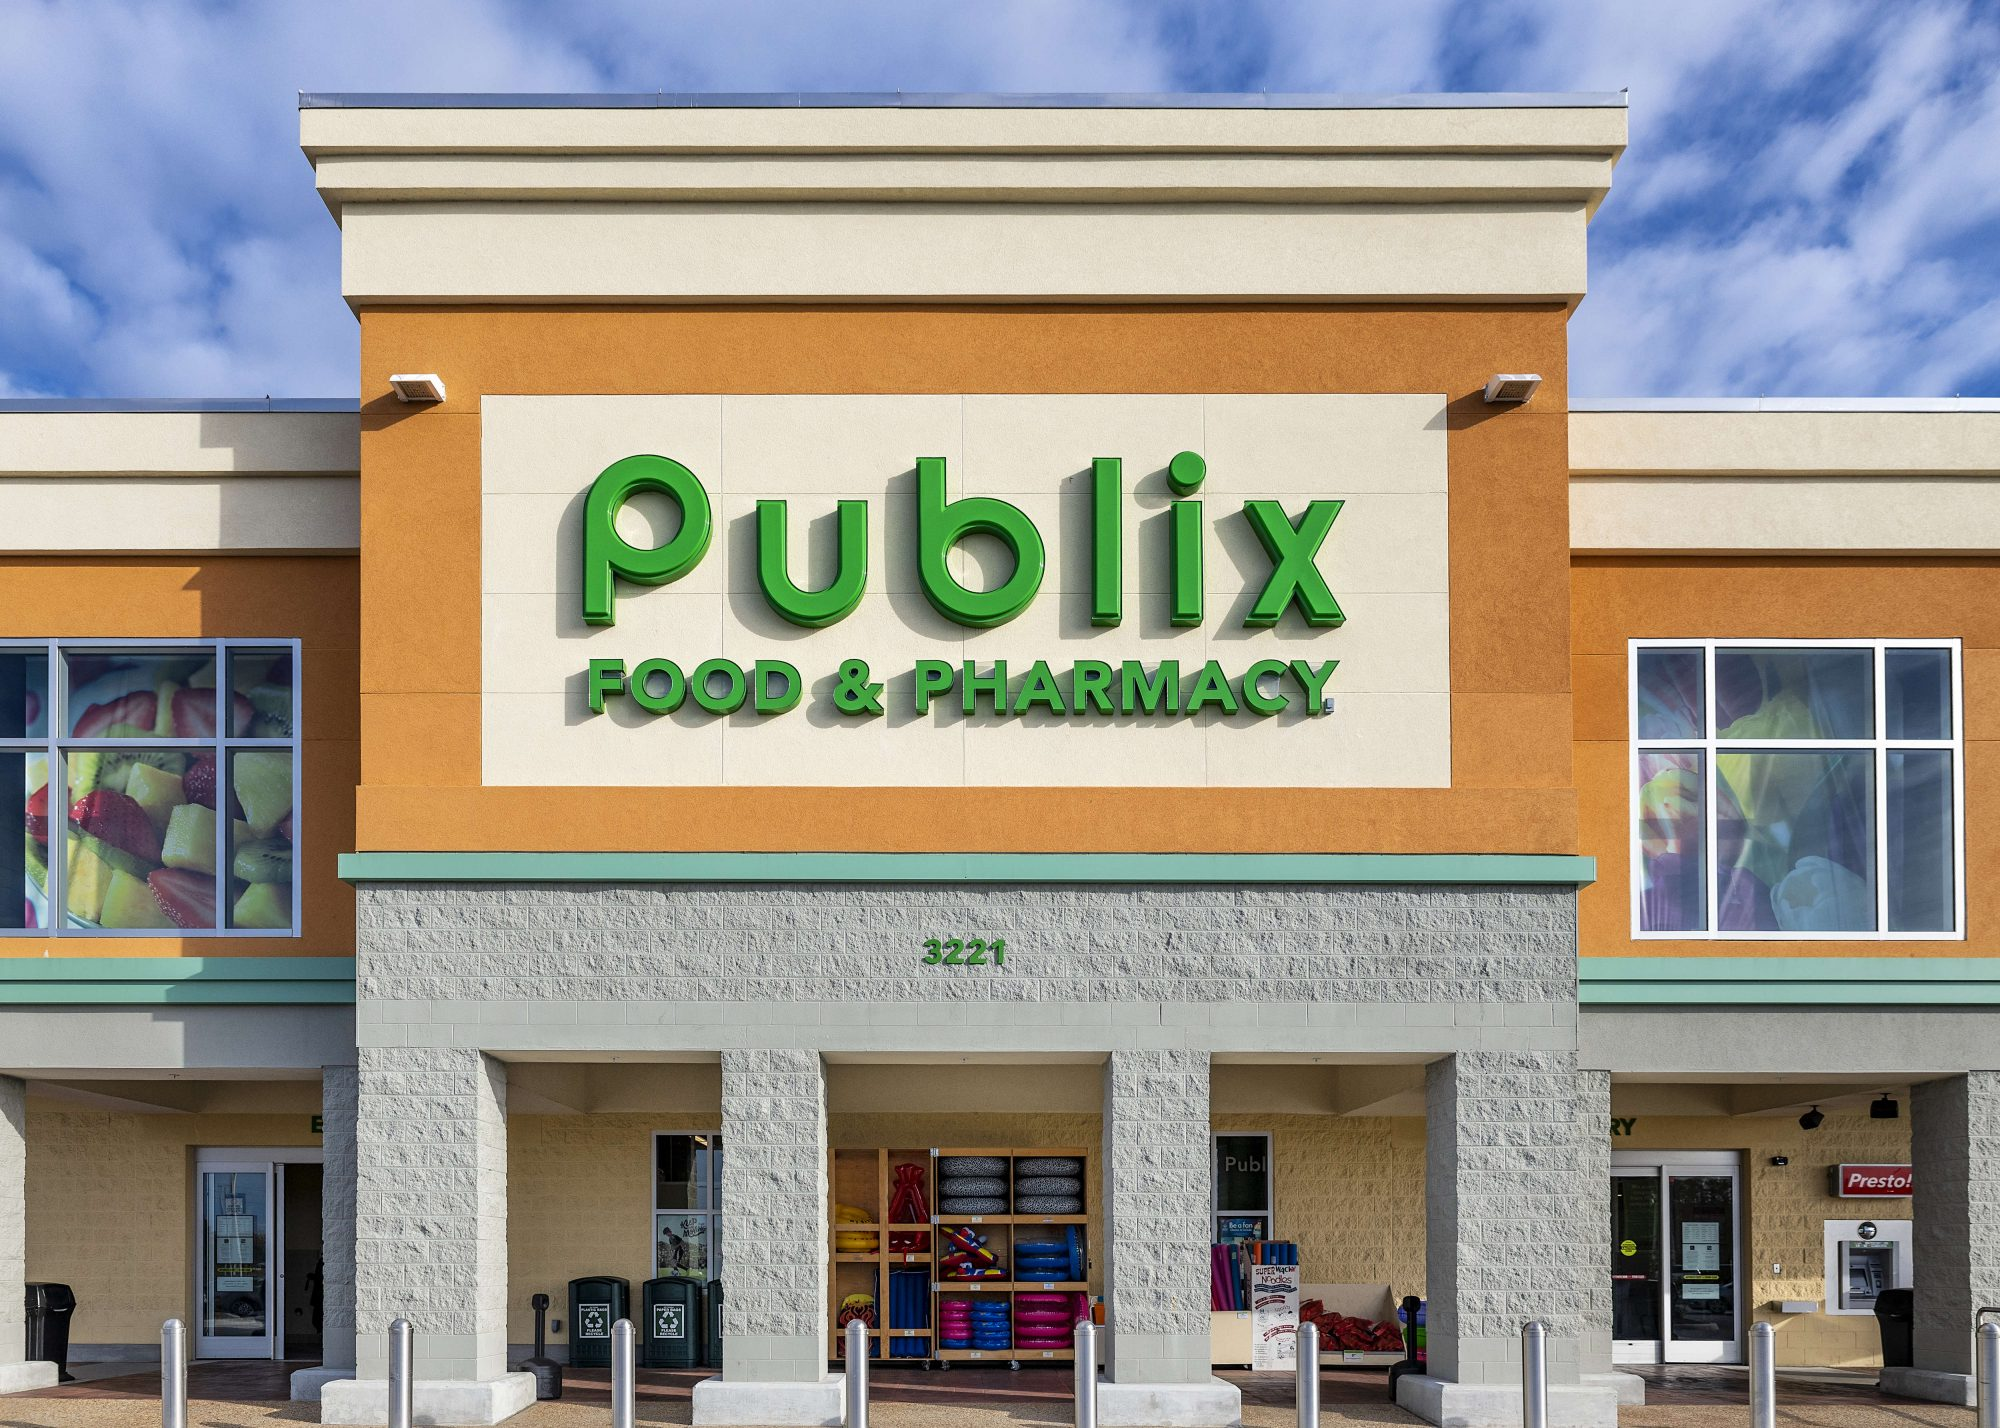 exterior of the Florida-based Publix food market